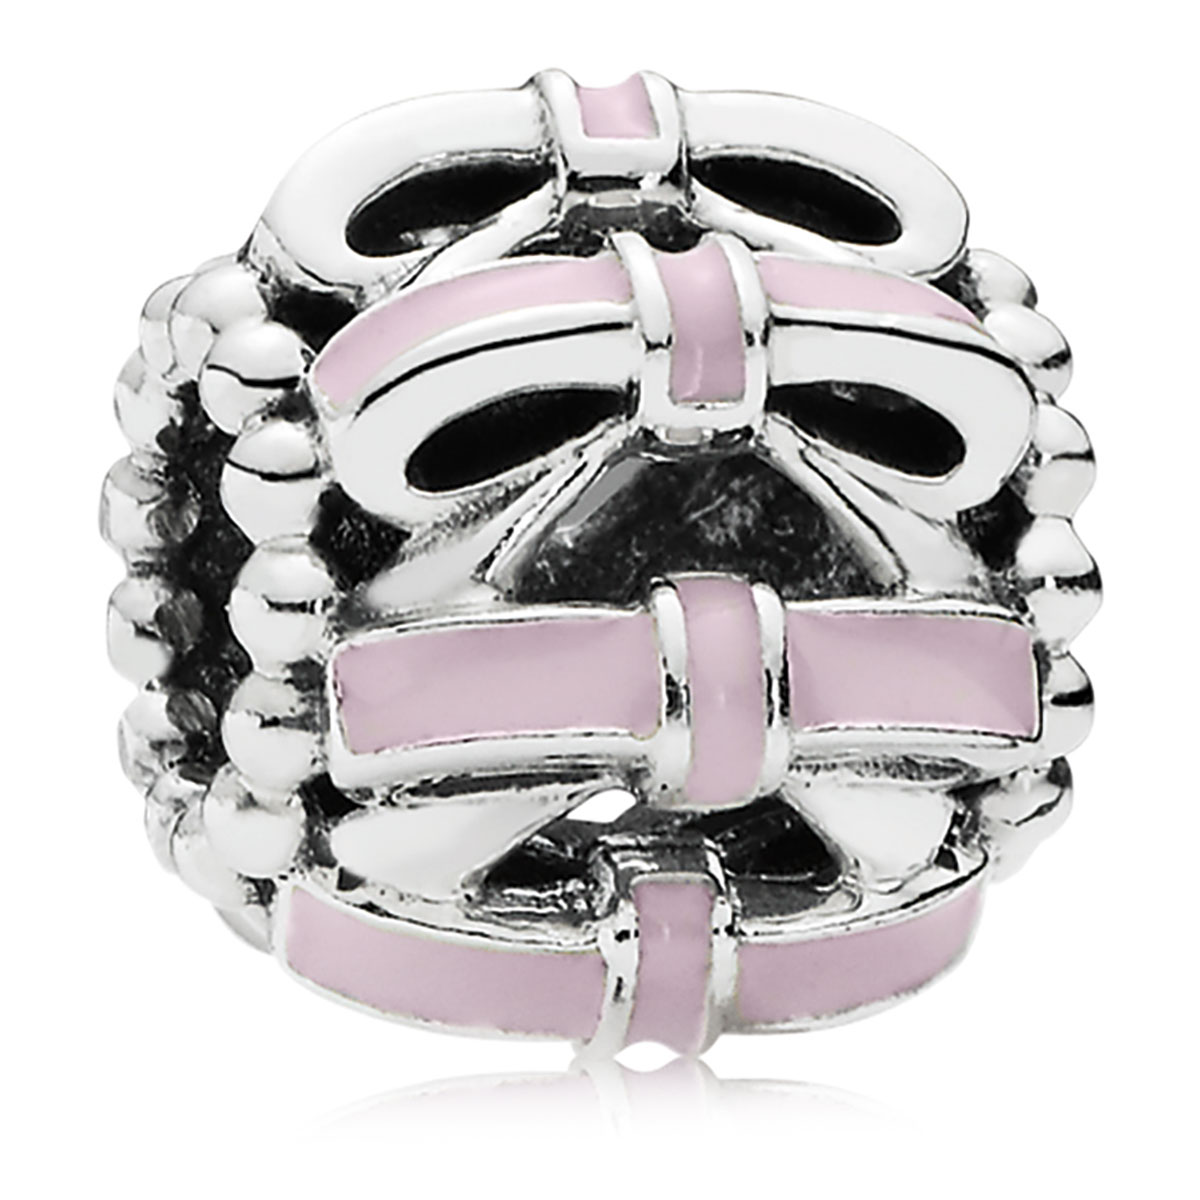 802-3145-PANDORA Sweet Sentiments with Pink Enamel Charm *PANDORA Shop in Shop Exclusive*